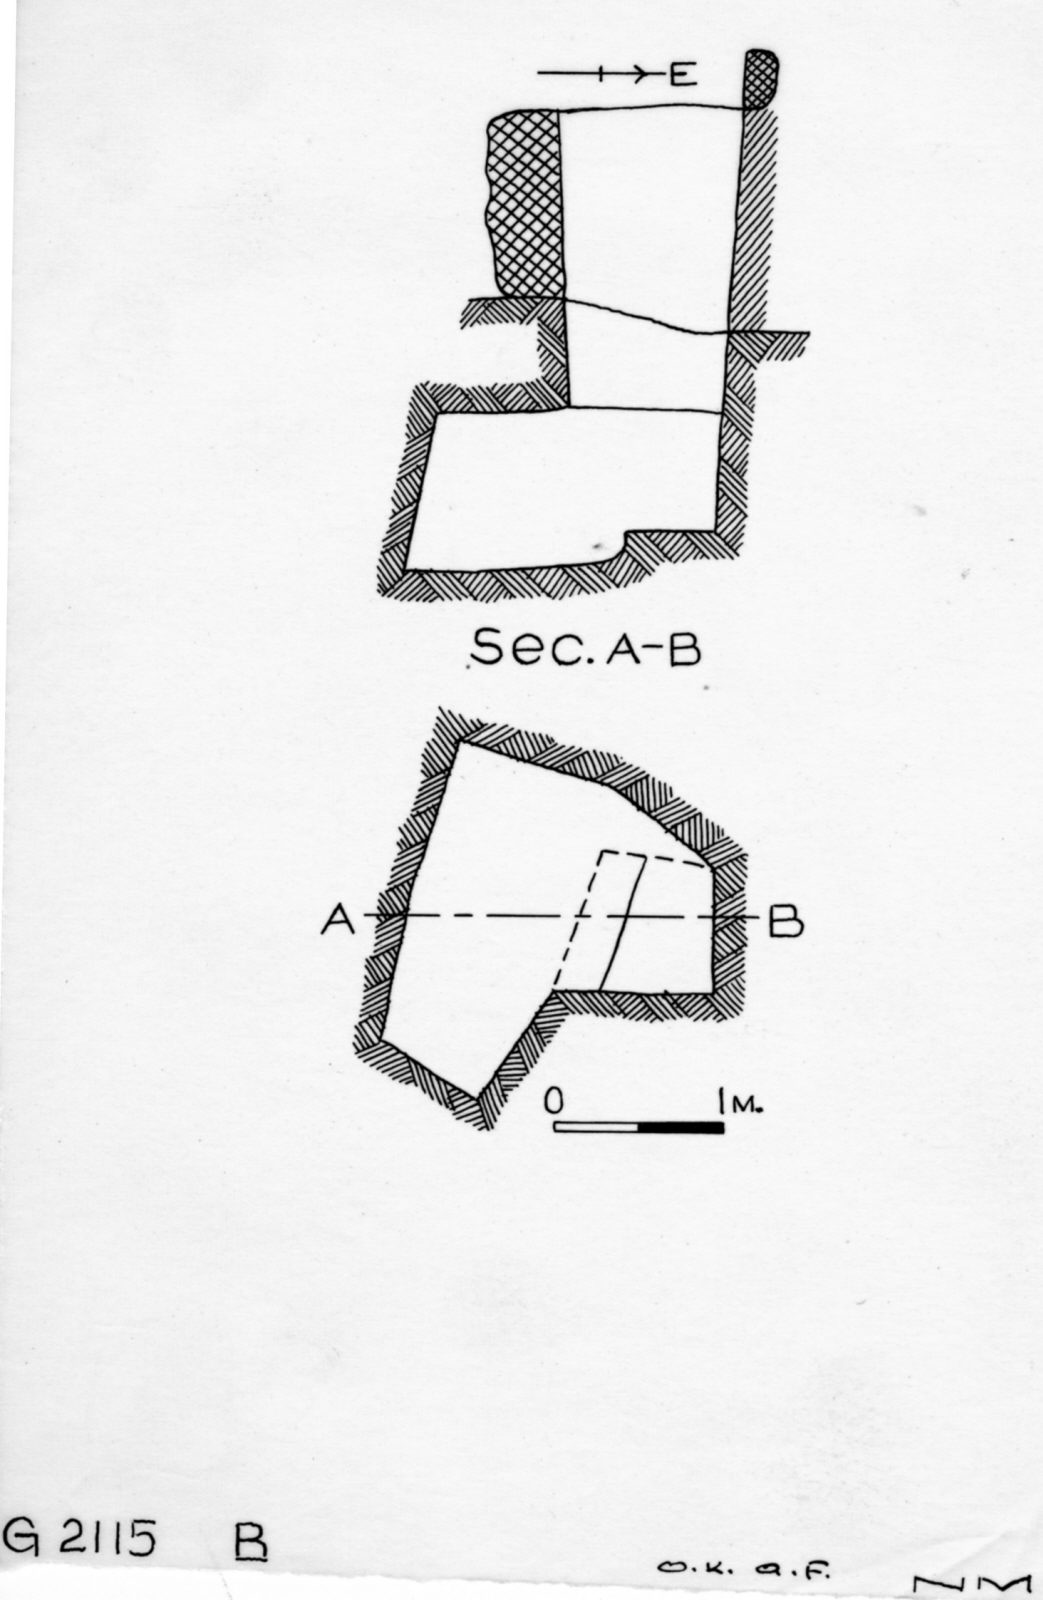 Maps and plans: G 2115, Shaft B